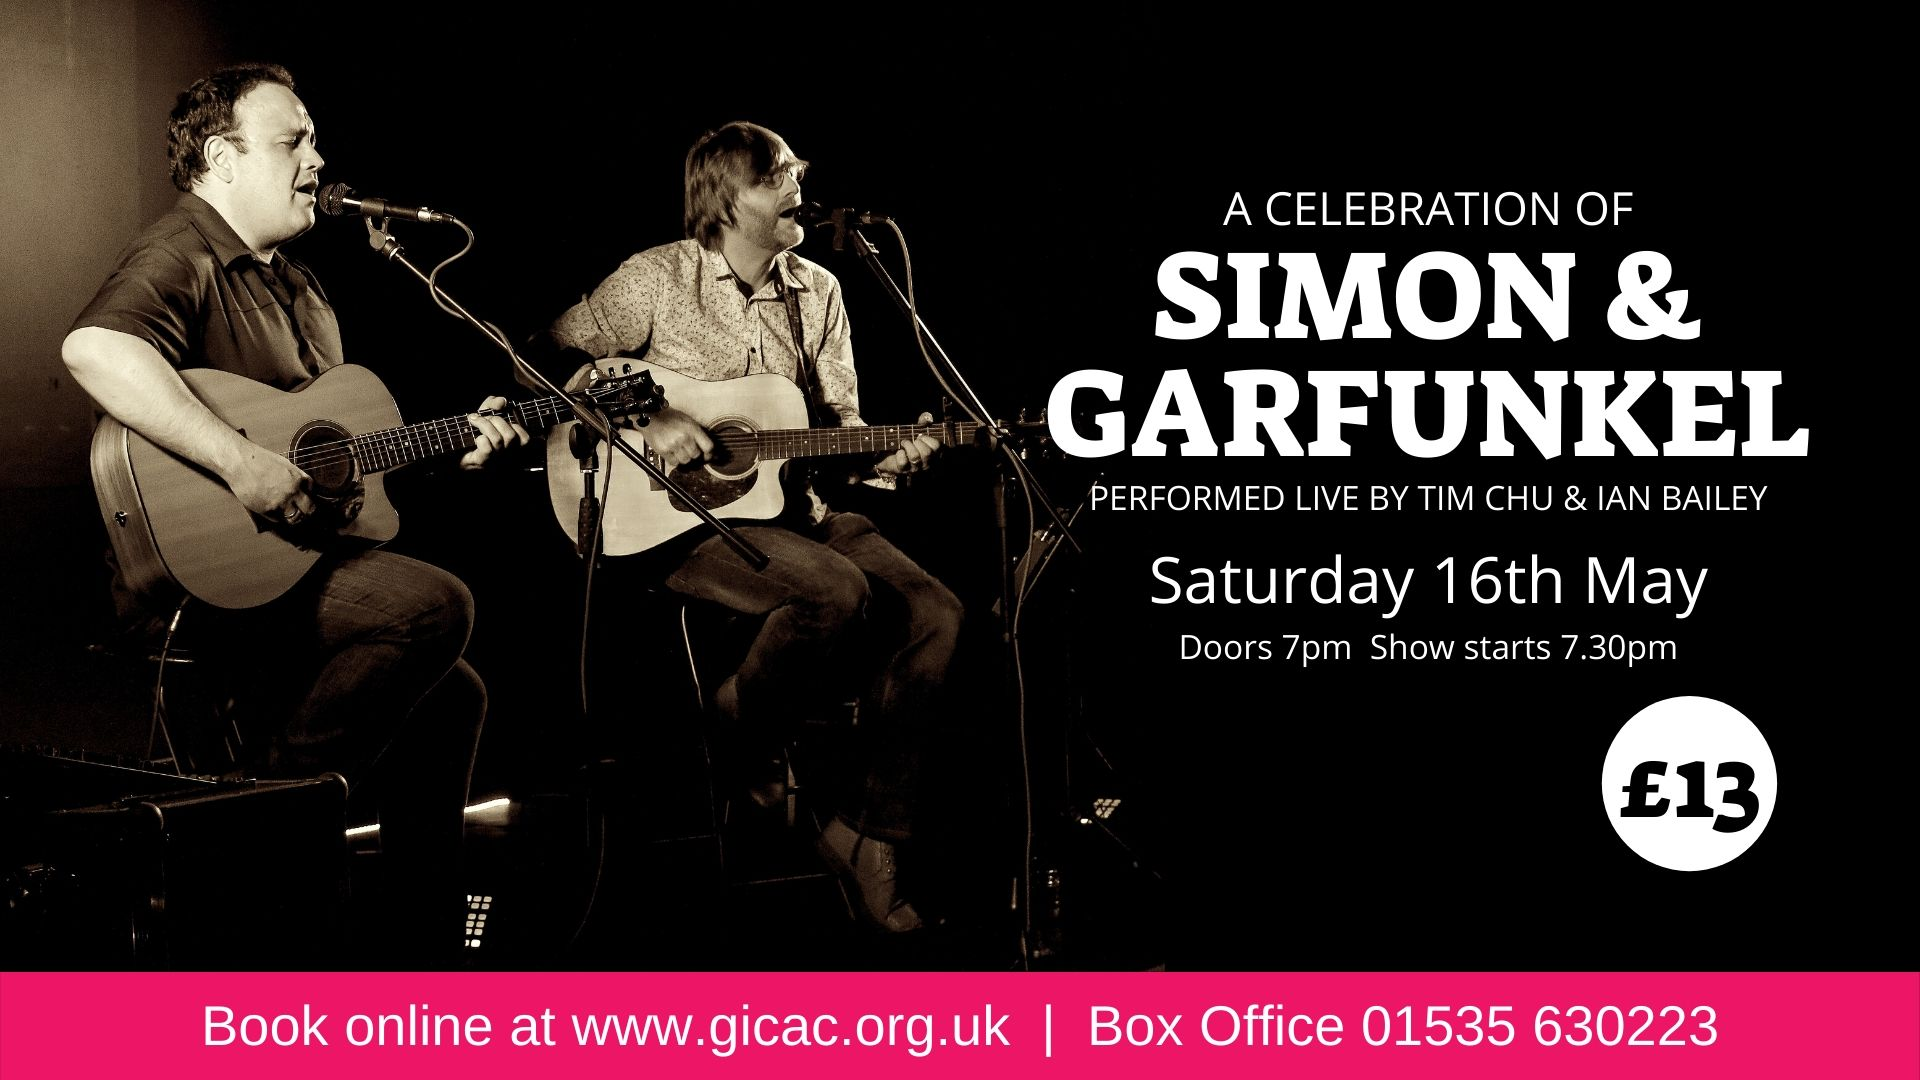 A Celebration of Simon & Garfunkel